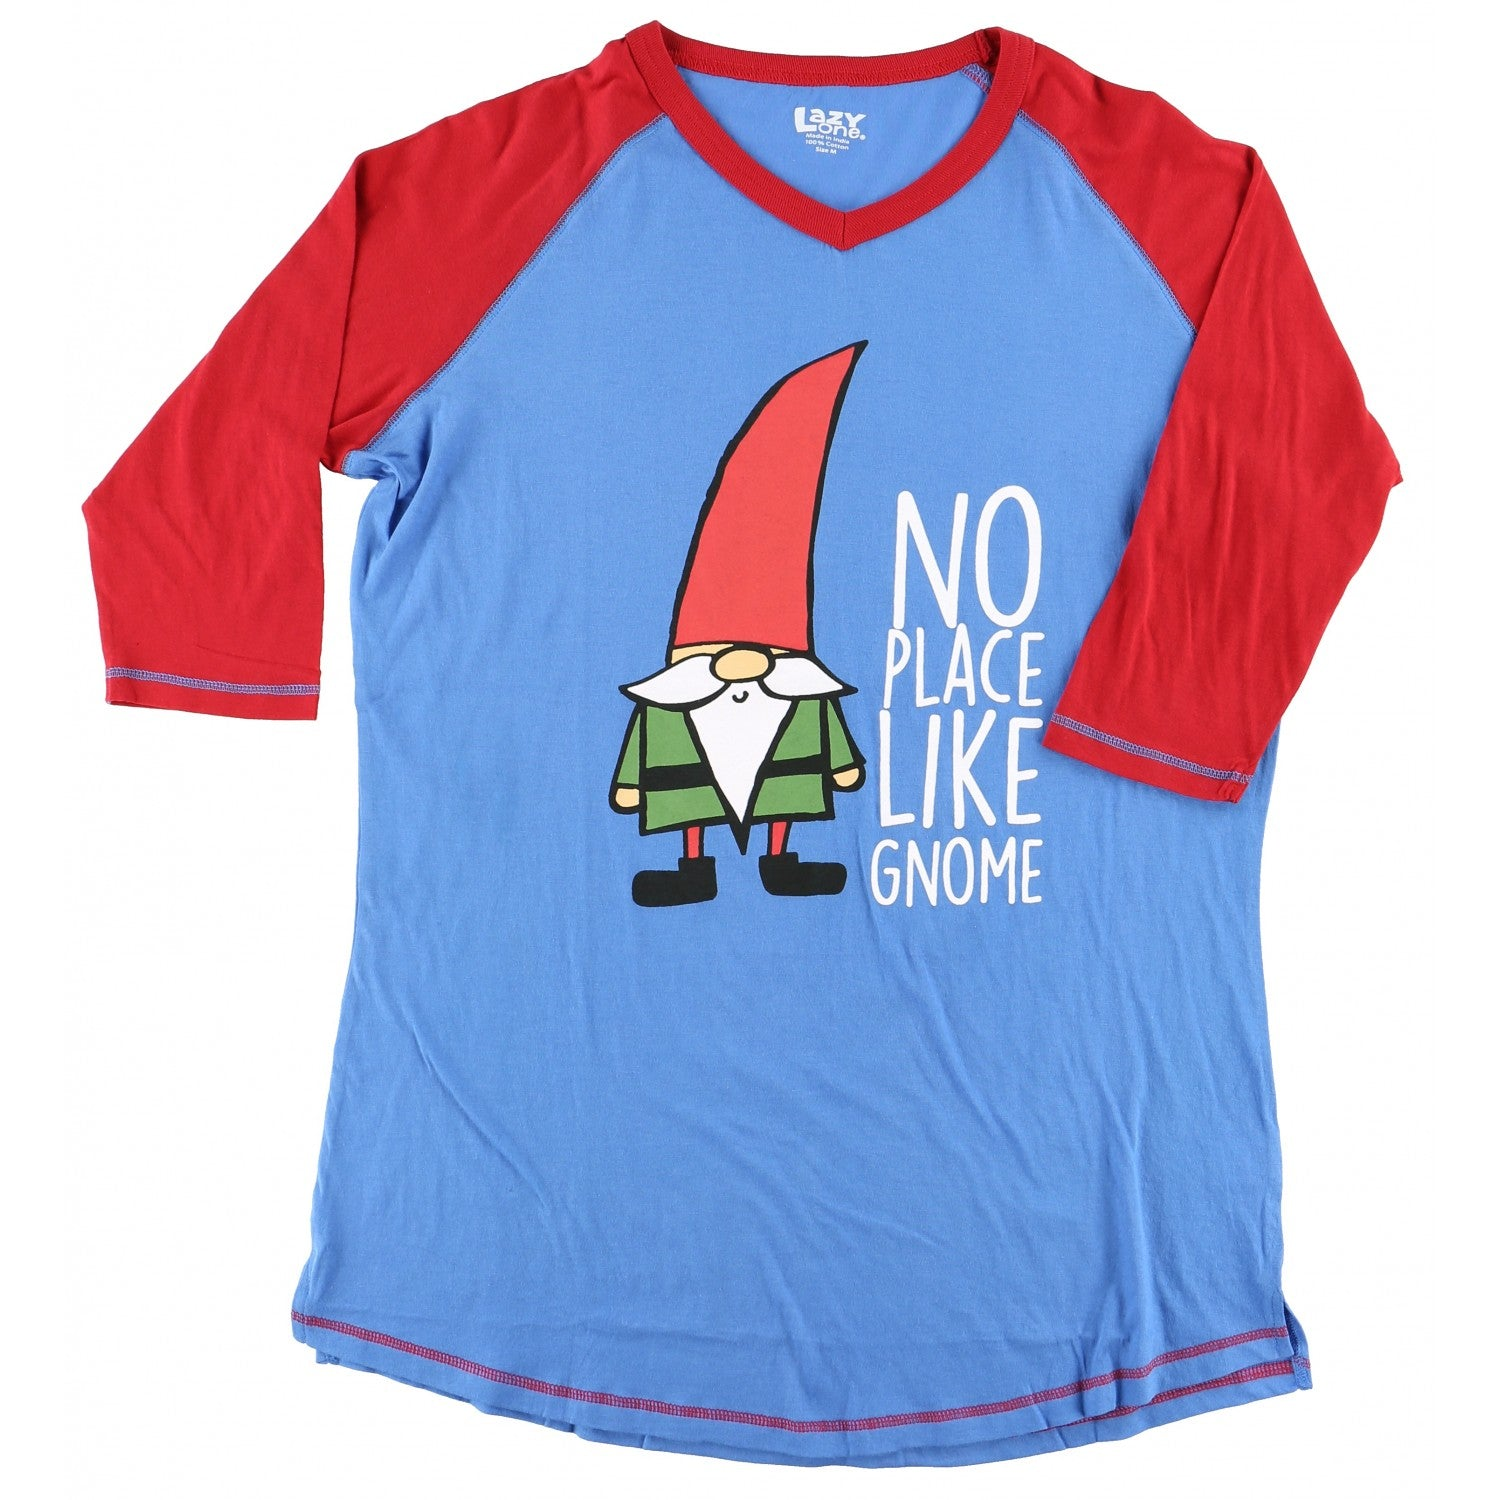 Gnome Women's PJ Top